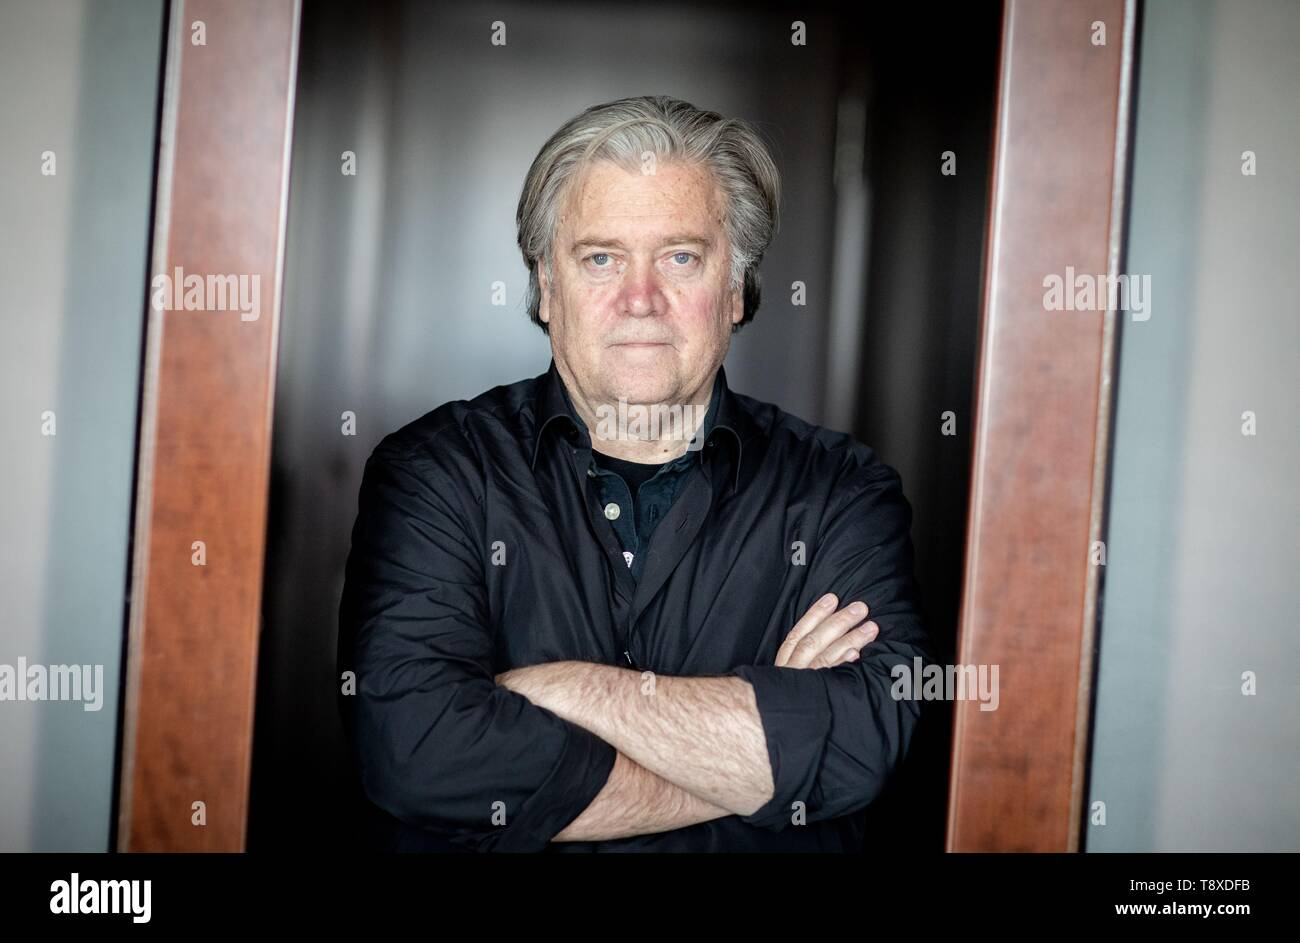 Berlin, Germany. 15th May, 2019. Steve Bannon, former advisor to the US president and US publicist, is standing in a door frame on the edge of an interview with the German press agency dpa. Credit: Kay Nietfeld/dpa/Alamy Live News - Stock Image